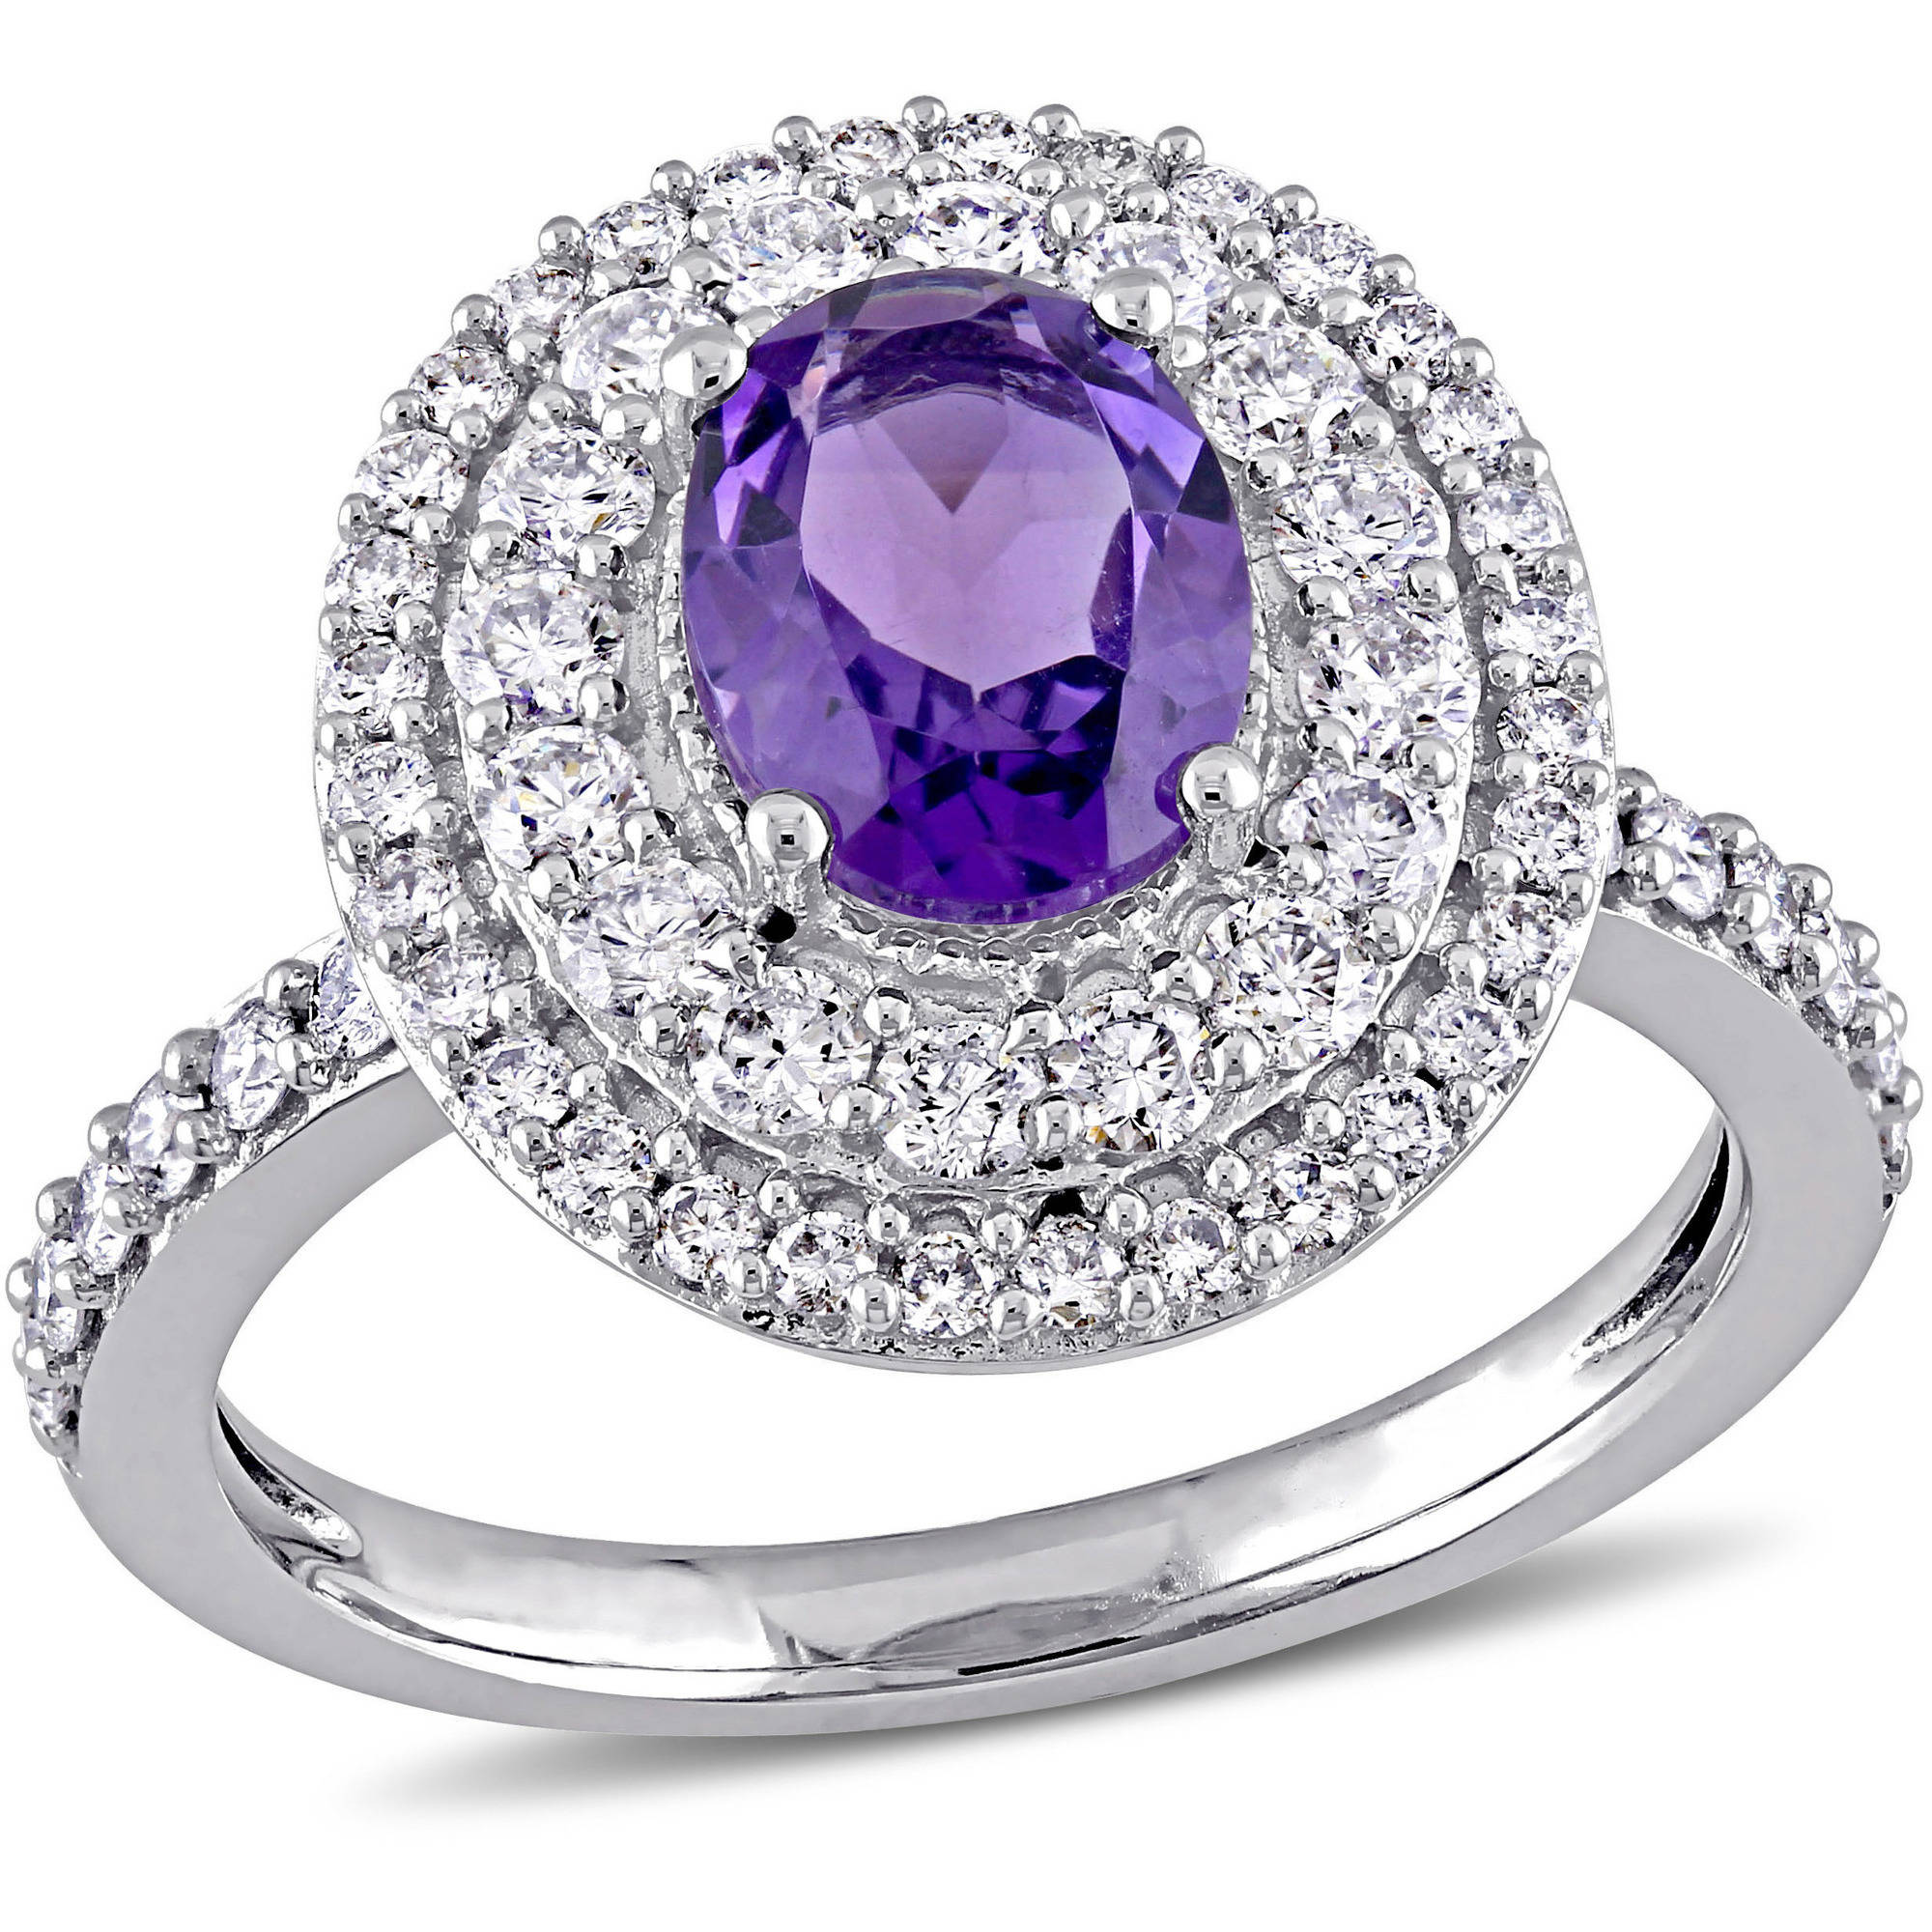 Tangelo 1-1 5 Carat T.G.W. Oval-Cut Amethyst and 7 8 Carat Diamond 14kt White Gold Double Halo Ring by Tangelo